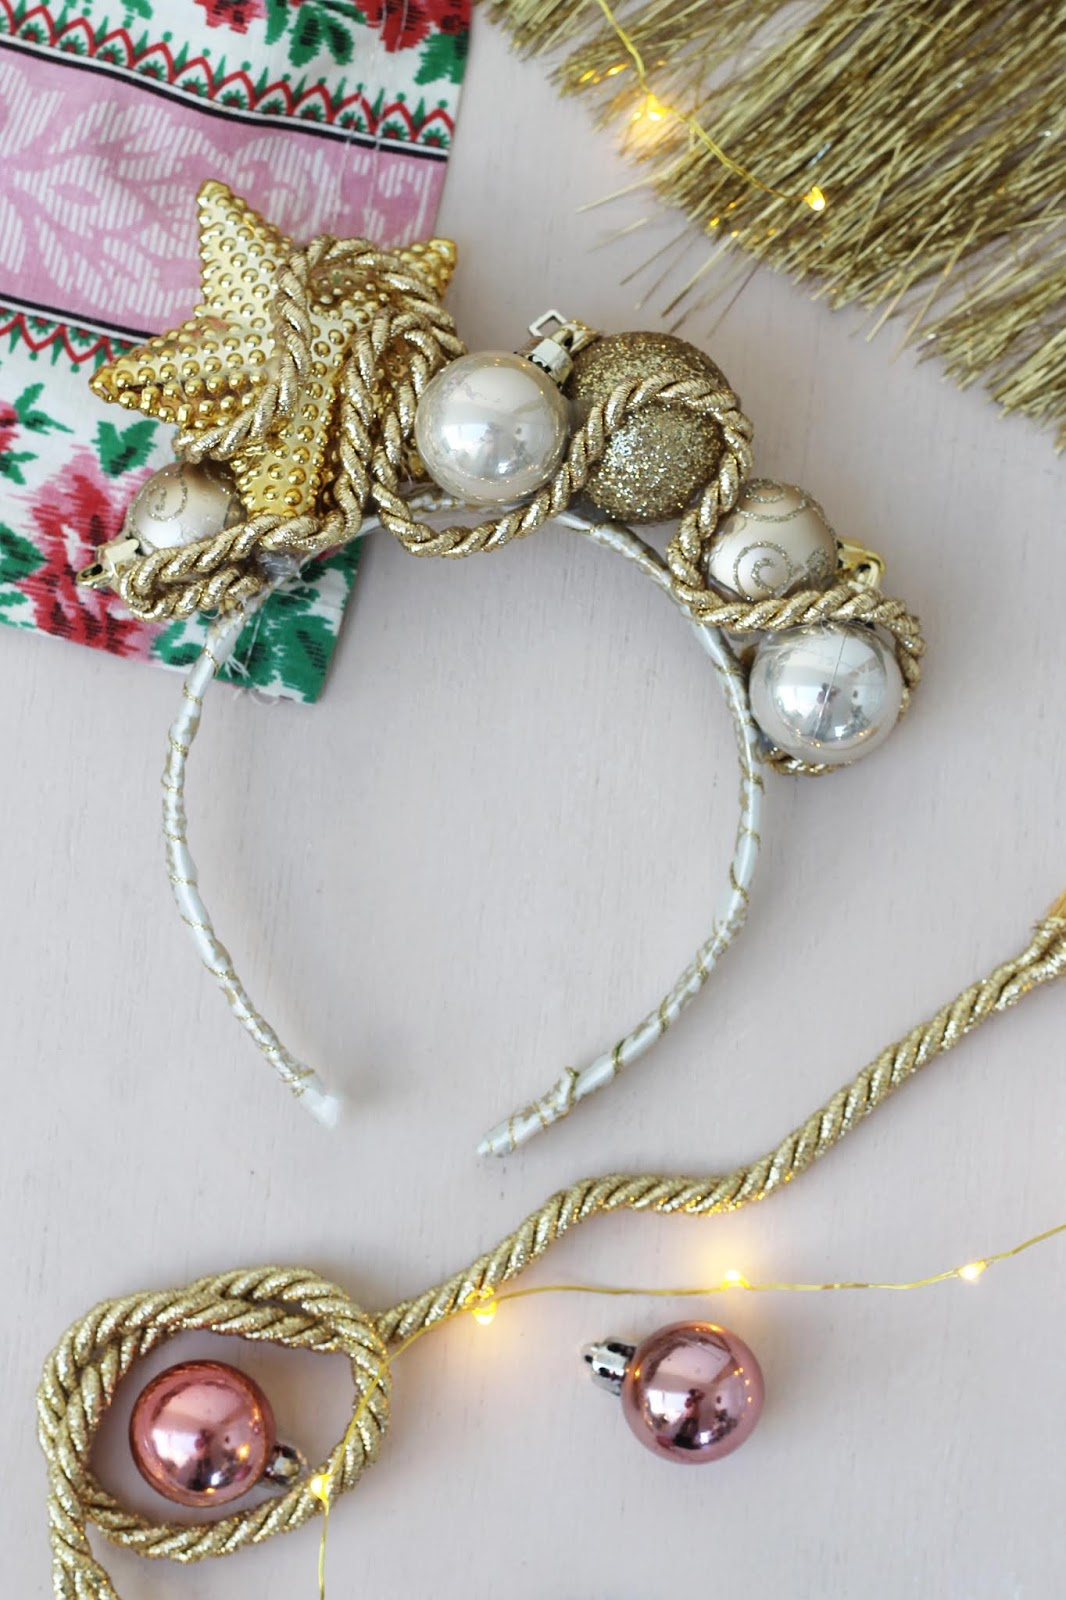 DIY – Recycled golden bauble hairband